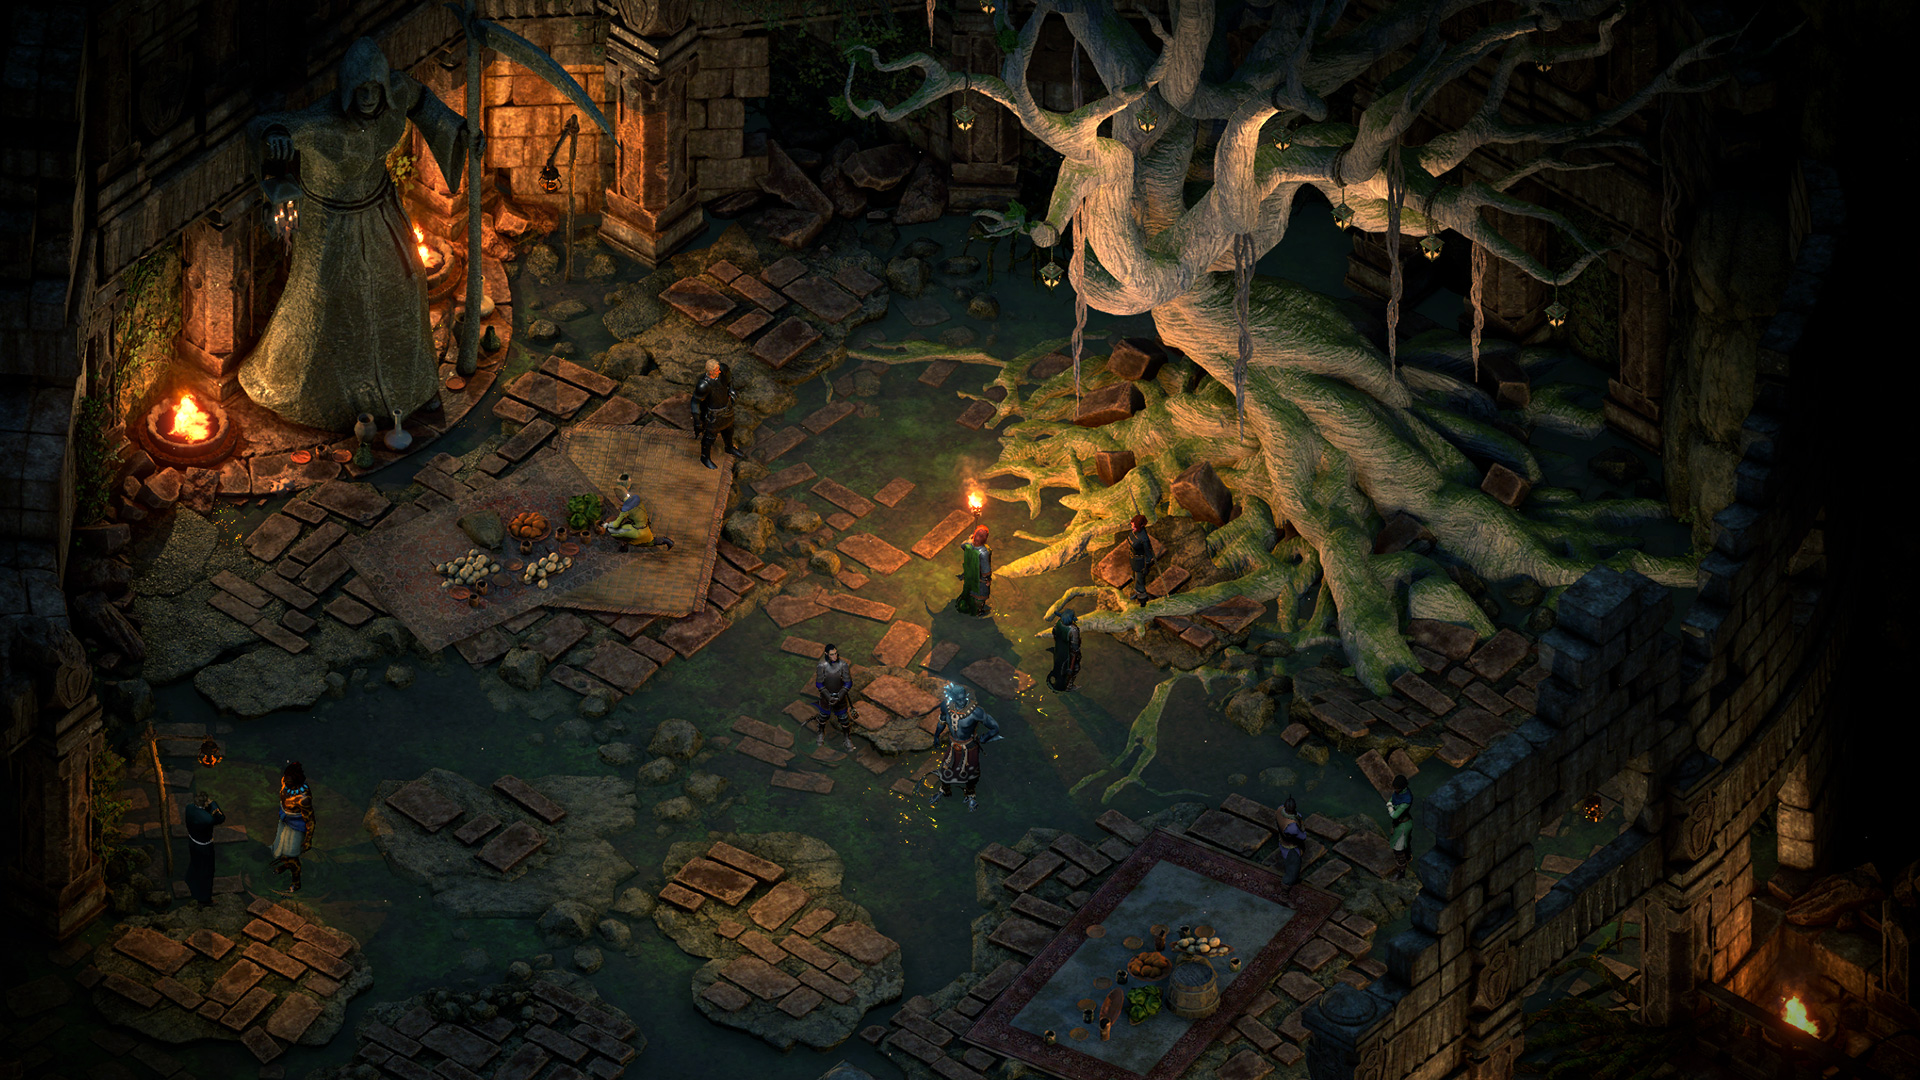 Pillars of Eternity 2: Deadfire - Pillars of Eternity 2: Deadfire Screenshots, Скриншоты